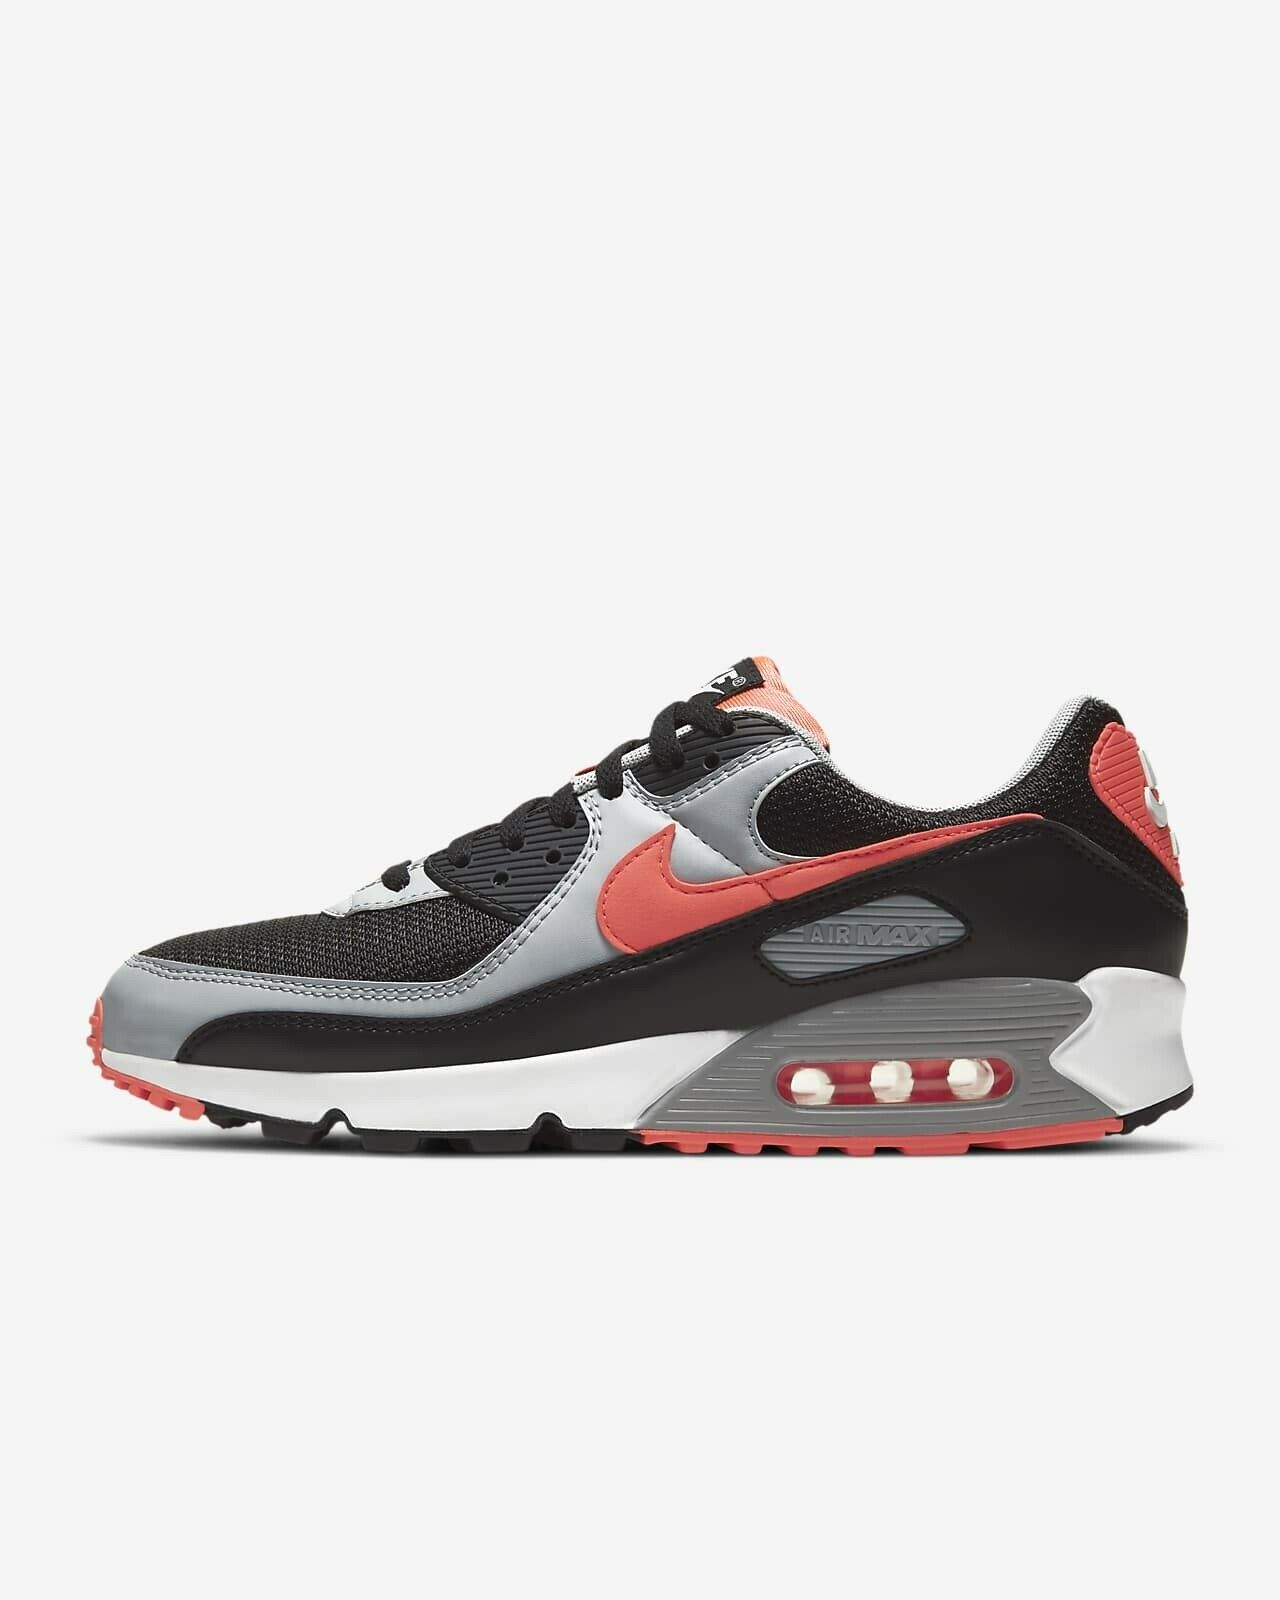 Size 10 - Nike Air Max 90 Radiant Red 2020